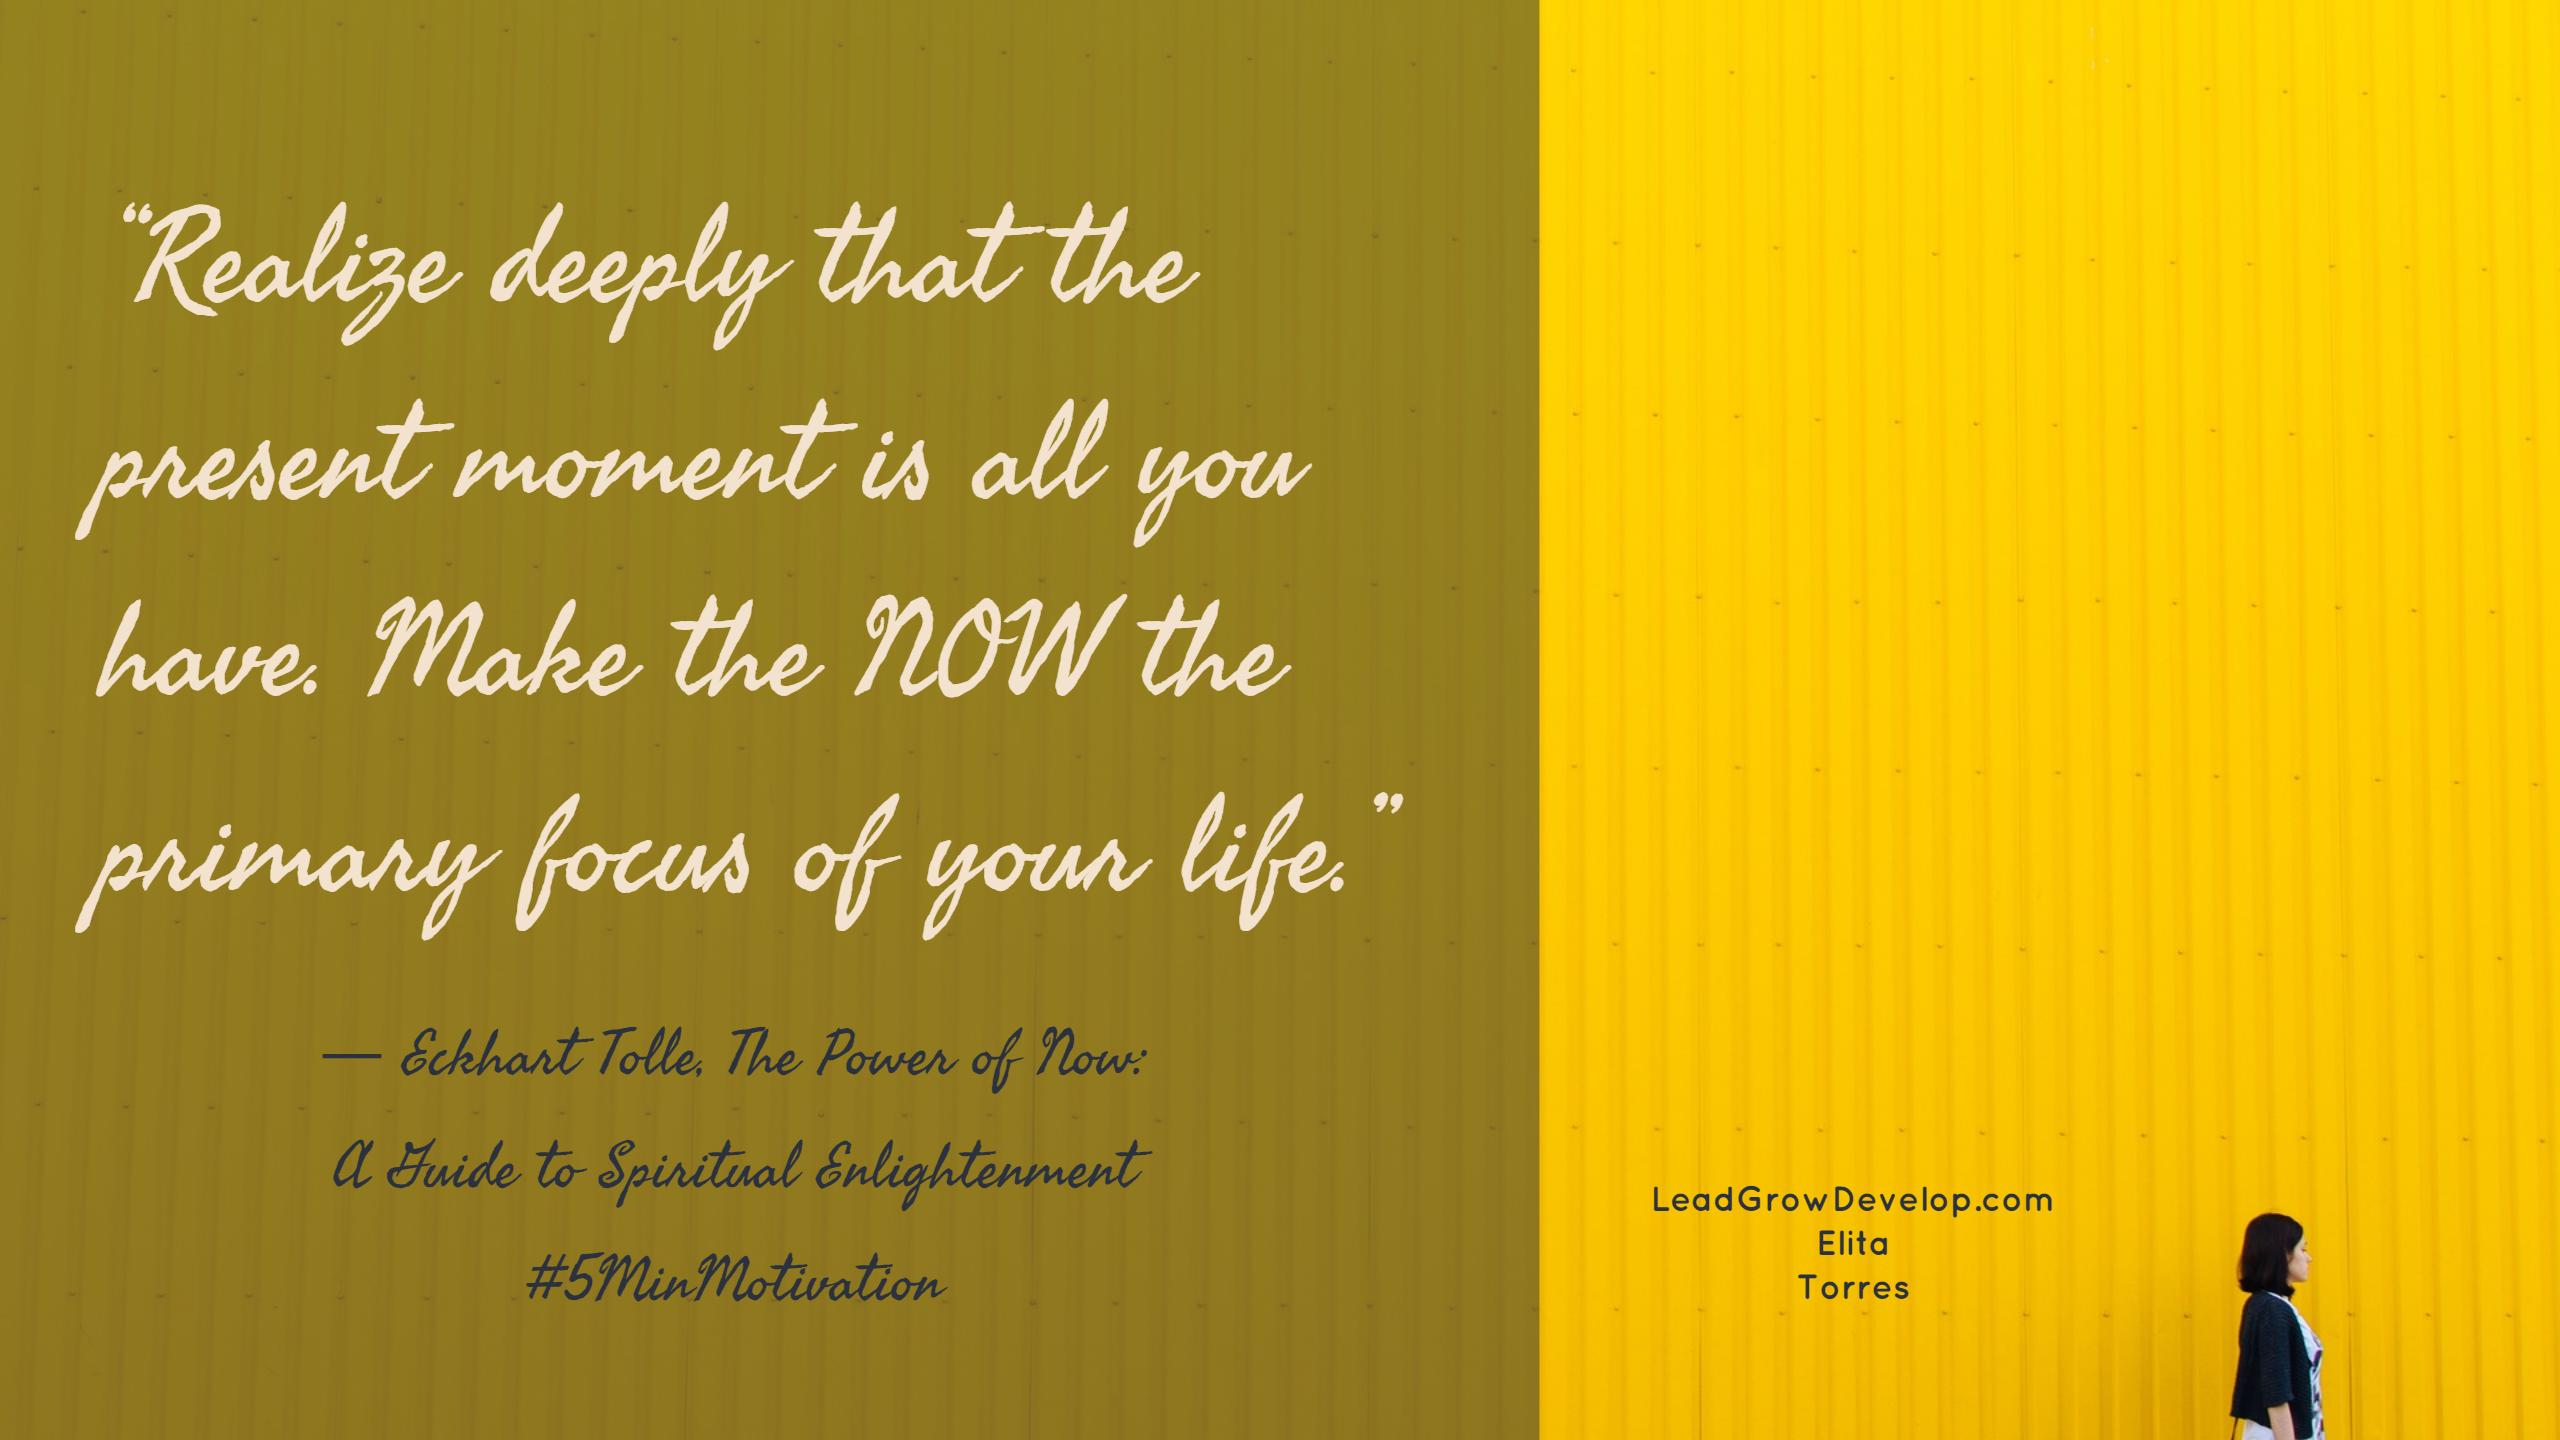 The Power Of Now Quotes The Power Of Now Quote  Lead Grow Develop Shares Insights On